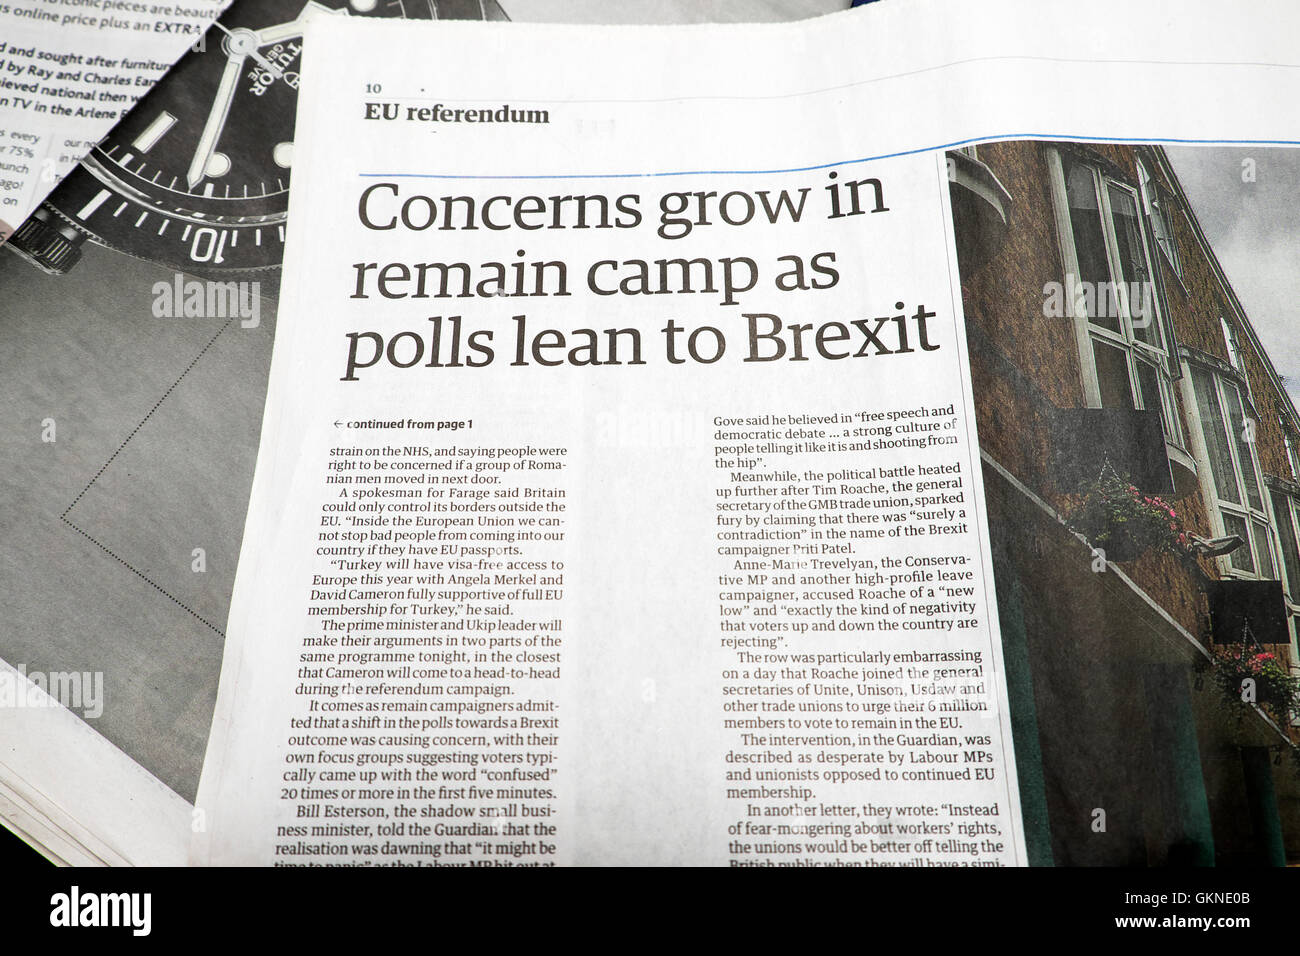 EU Referendum article in Guardian newspaper headline  'Concerns grow in remain camp as polls lean to Brexit' - Stock Image